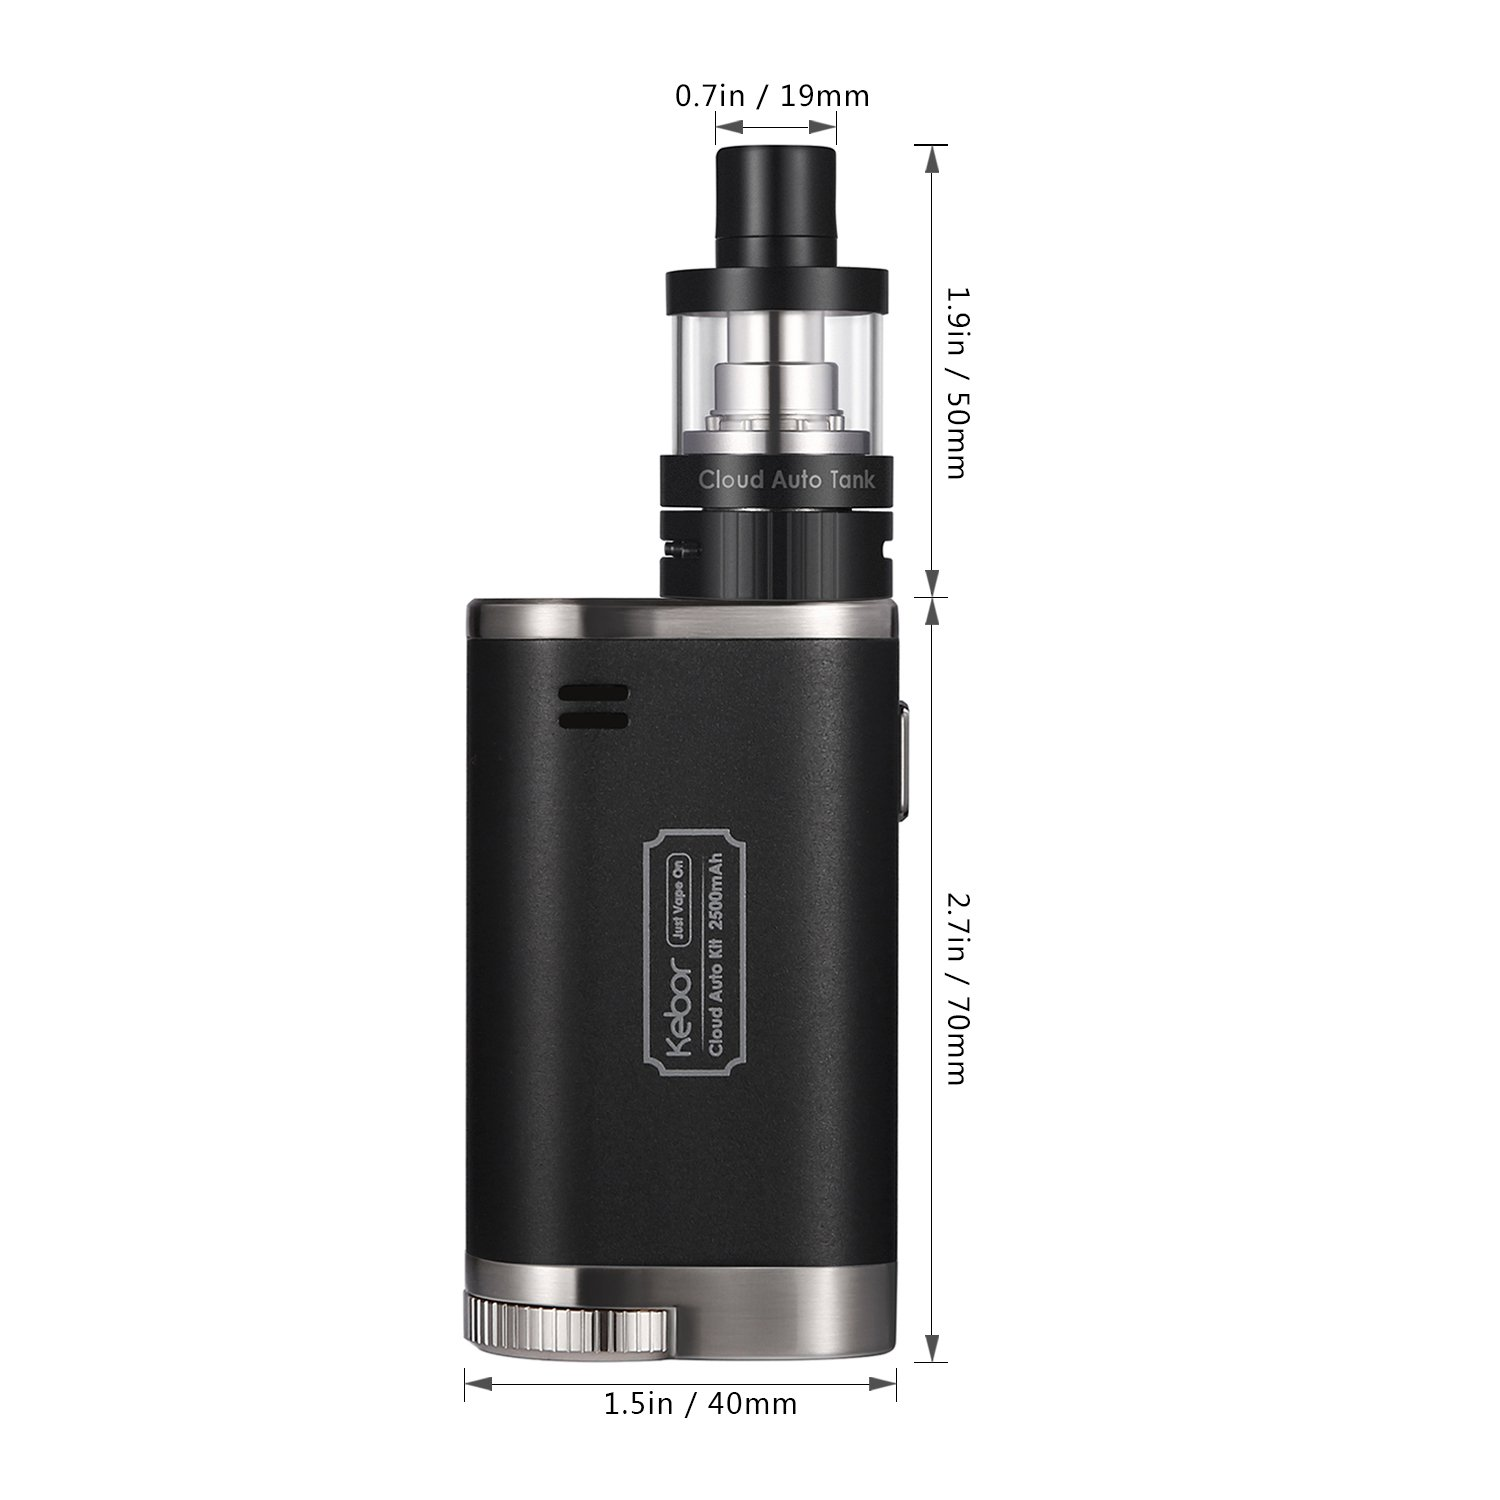 Innokin Vapeador Cigarro Electronico de Vapor, Kebor® Cloud Auto 40W Vape Box Mod Kit Cigarrillo MTL/DTL Cambiar Automáticamente, 2ml top-fill 0,5/1,2ohm ...